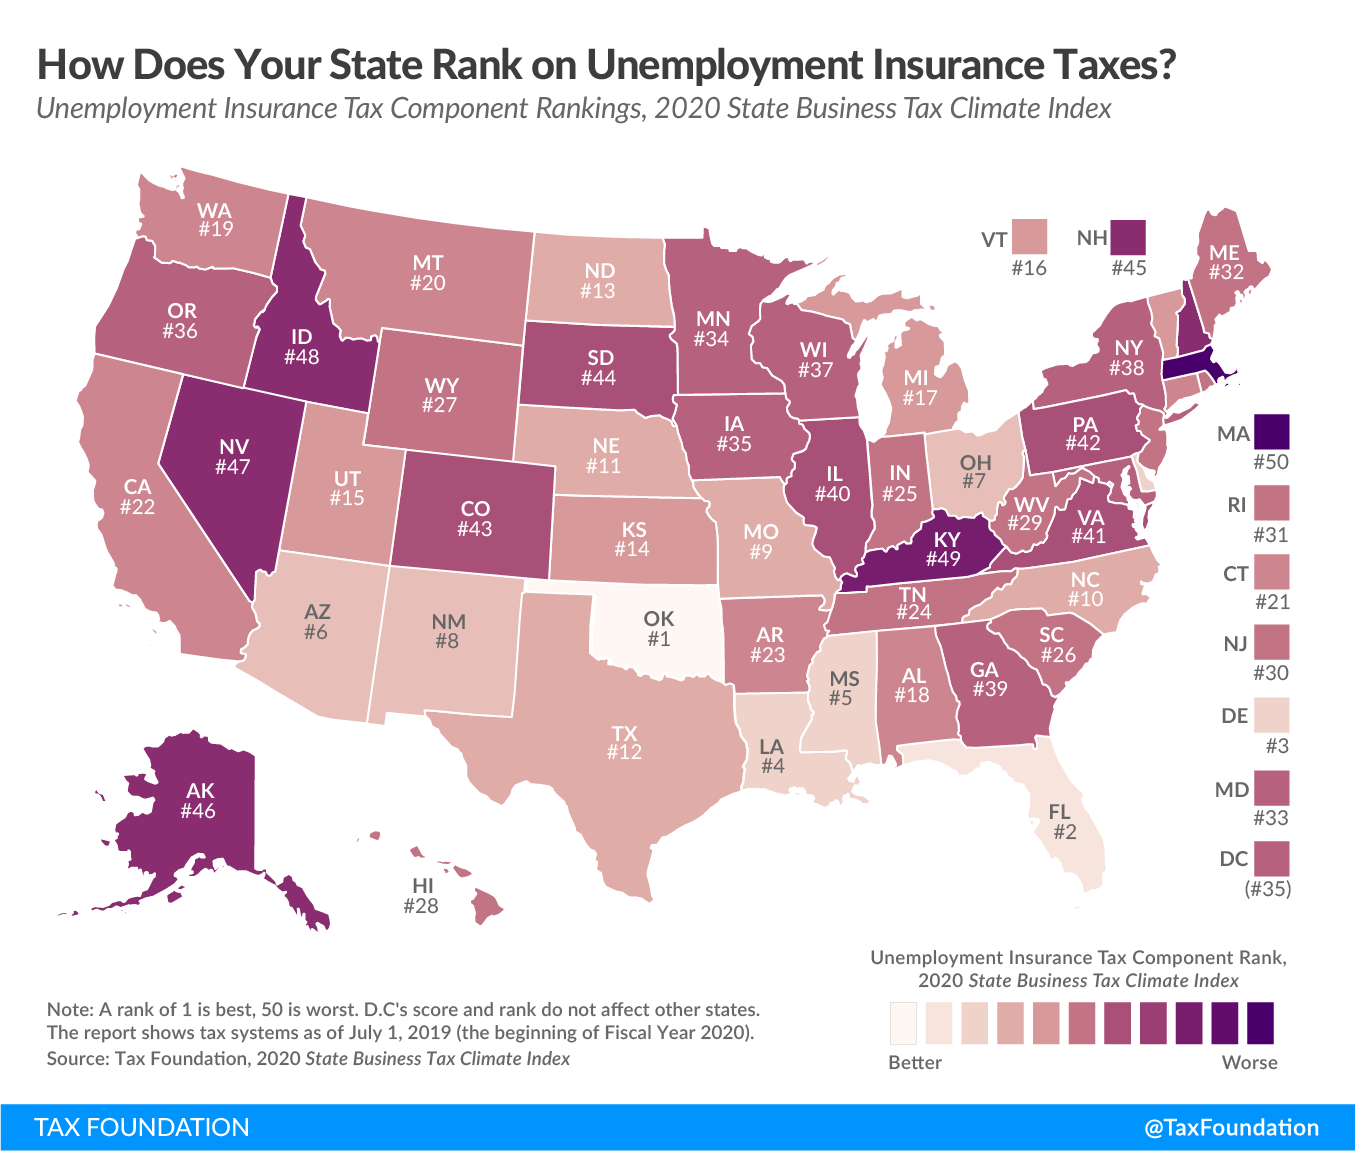 Best and worst unemployment insurance tax codes in the country. See full state unemployment insurance tax code rankings in 2019.